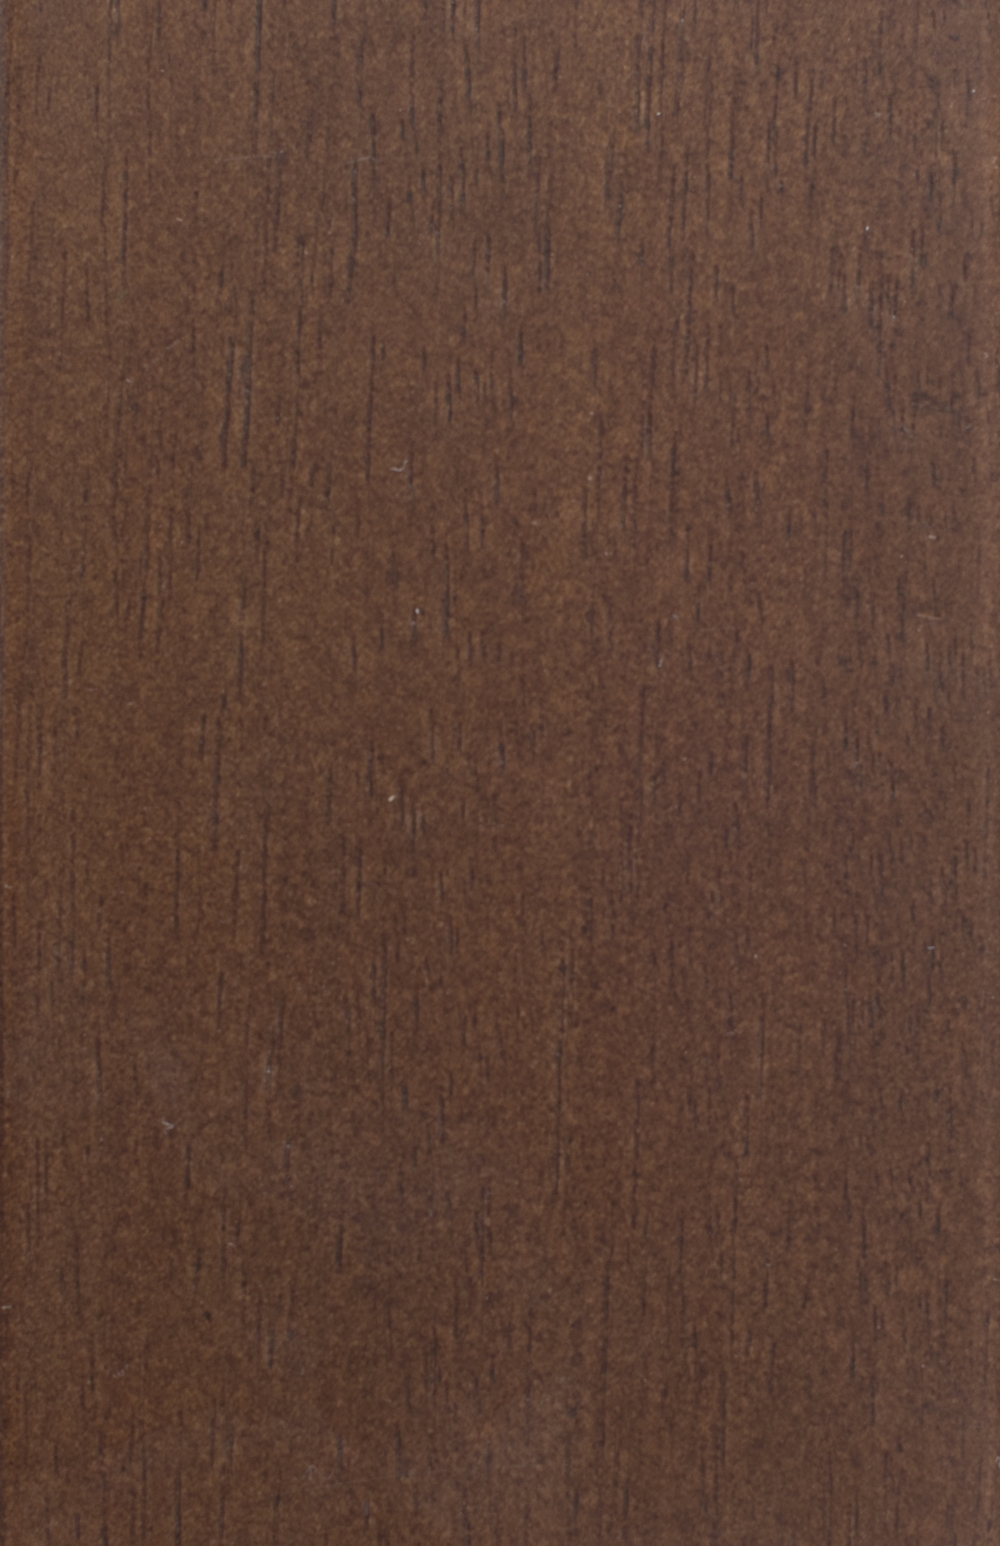 Jequitibá is a Brazilian hardwood featuring a natural luster and clear grain structure. It is certified sustainably harvested.